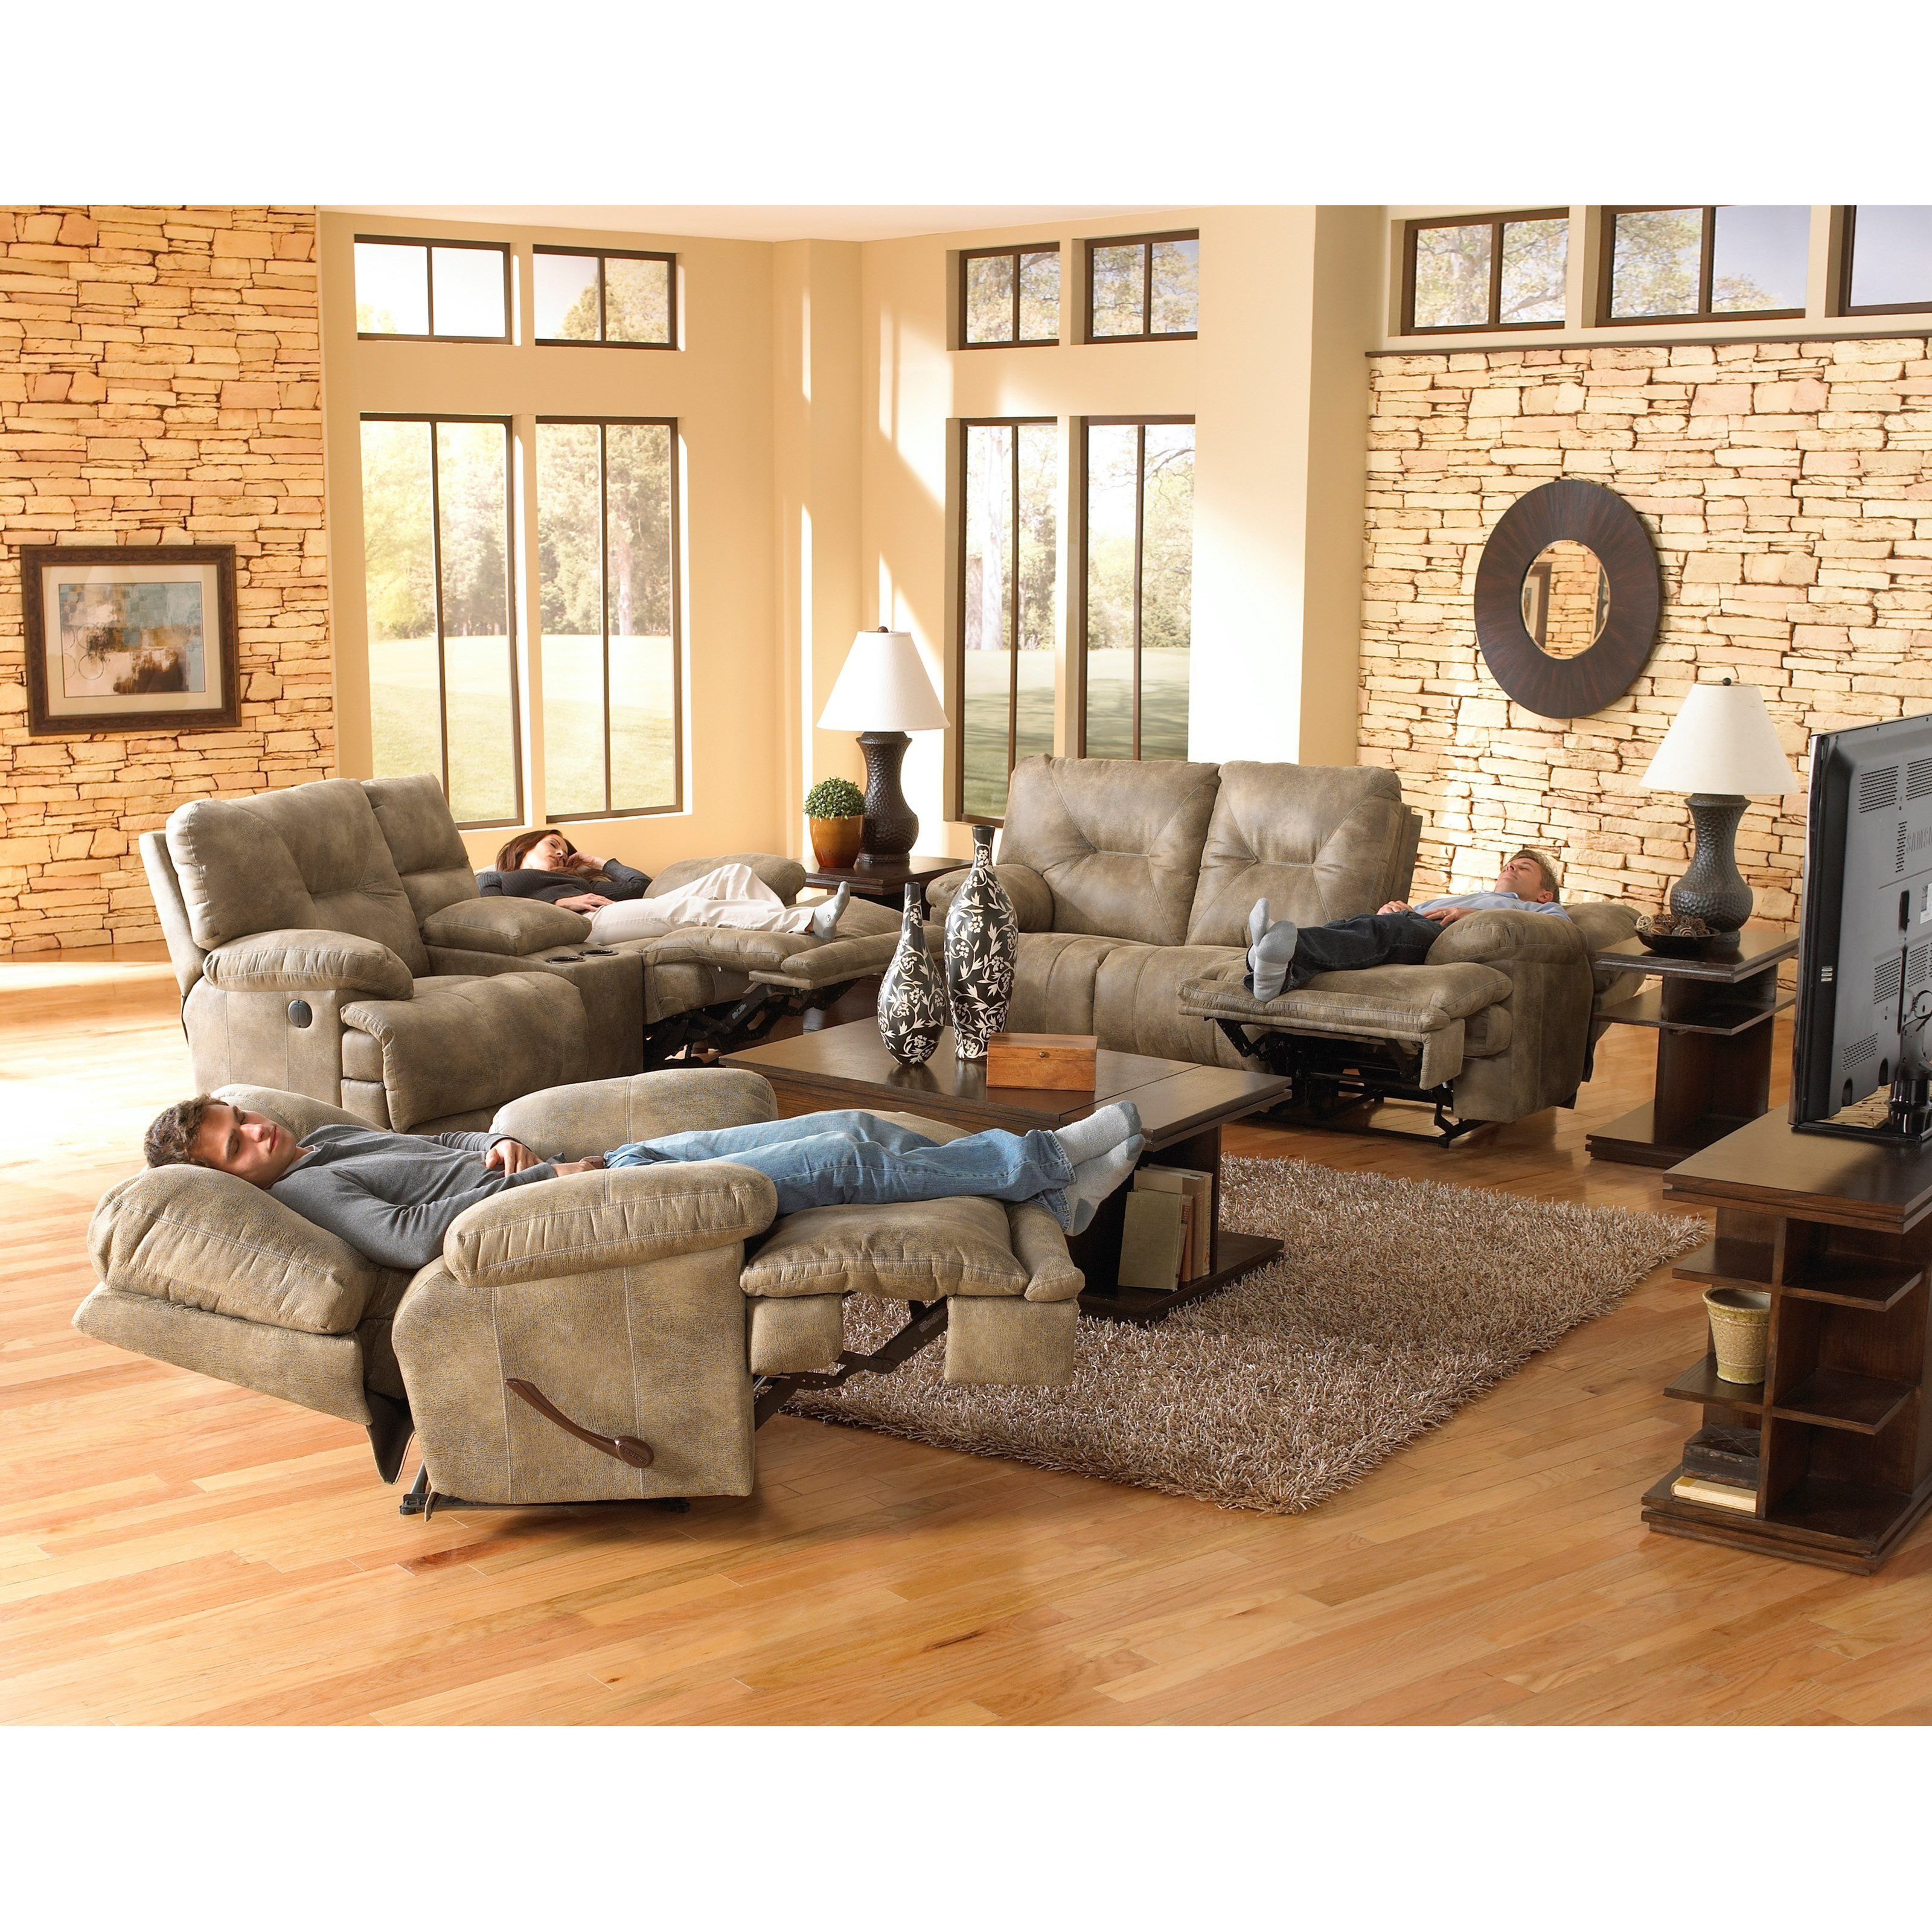 3 Seat Quot Lay Flat Quot Faux Leather Reclining Sofa By Catnapper